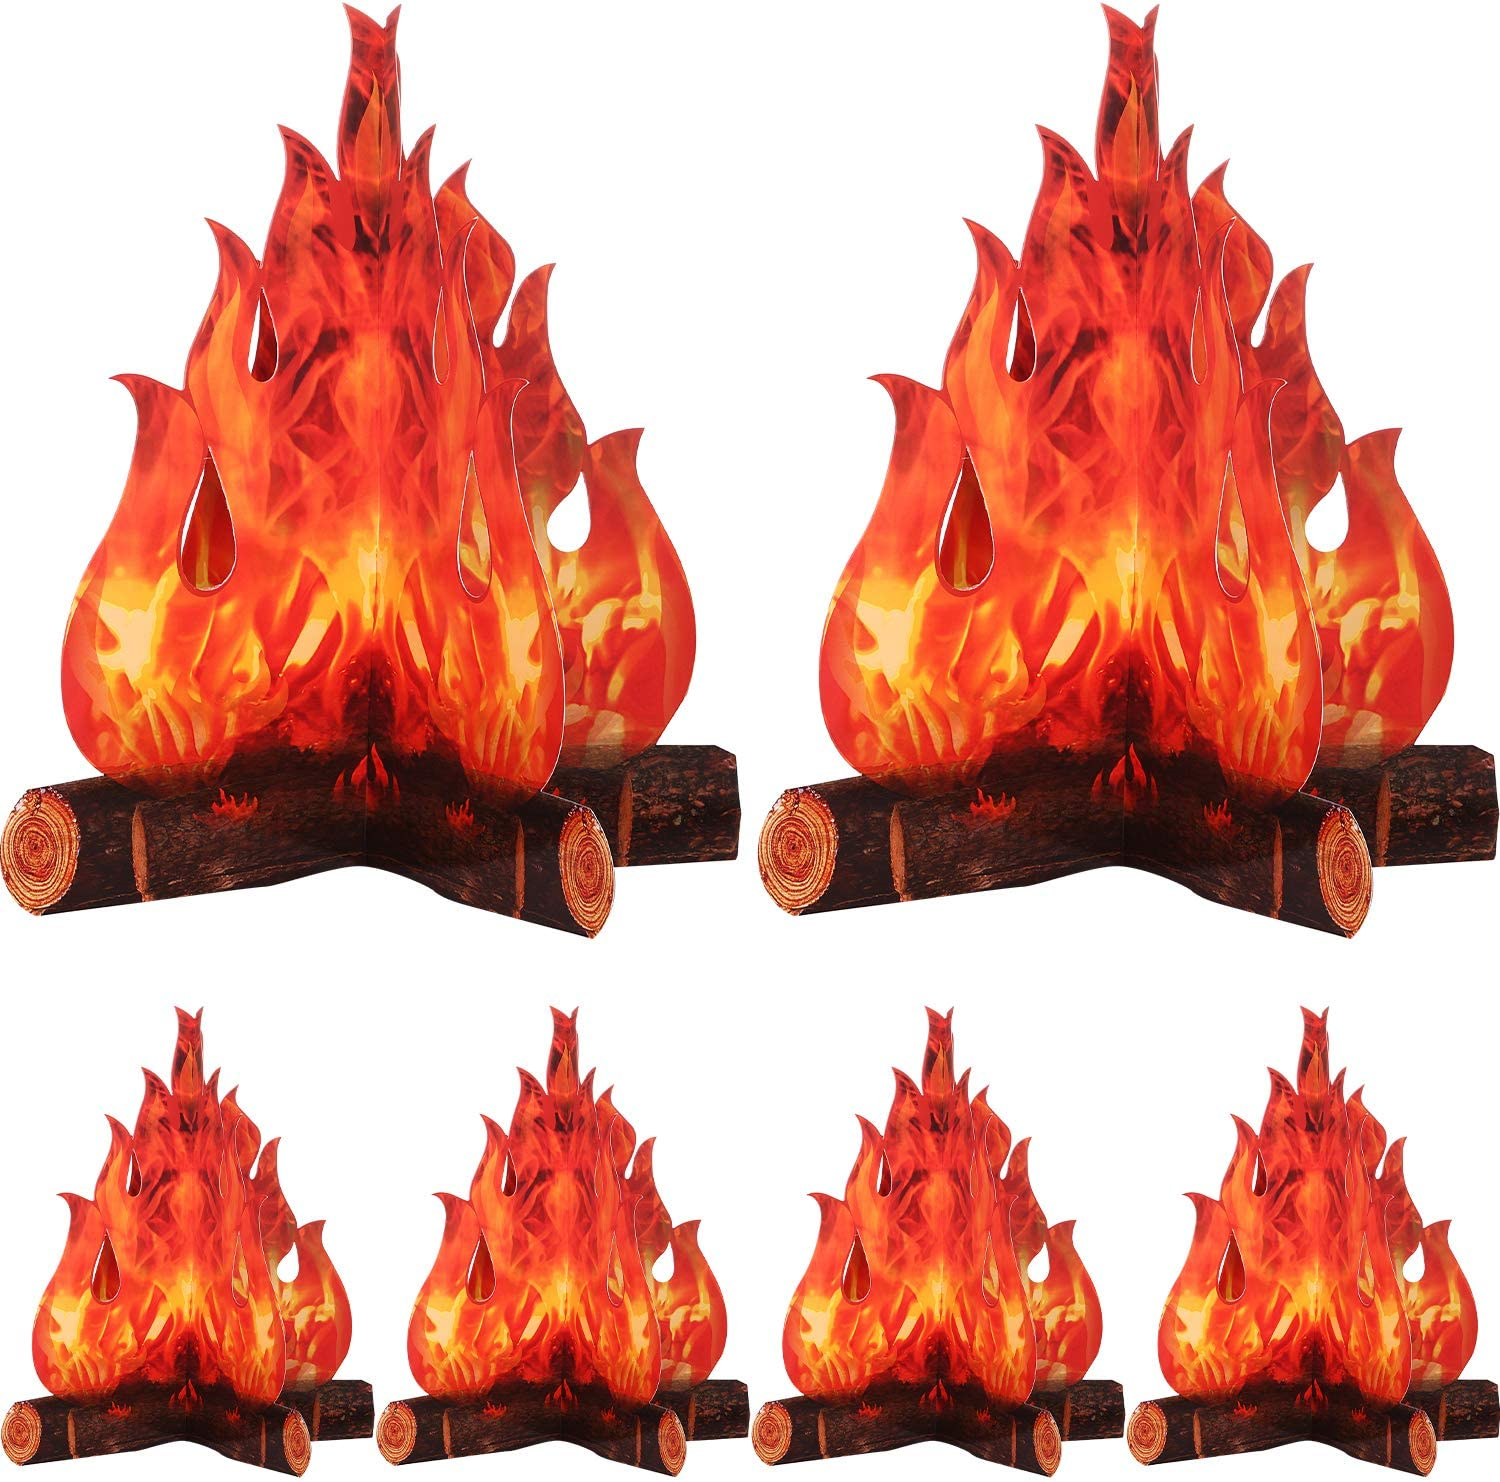 3D Decorative Cardboard Campfire Centerpiece Artificial Fire Fake Flame Paper Party Decorative Flame Torch (Red Orange, 6 Set)